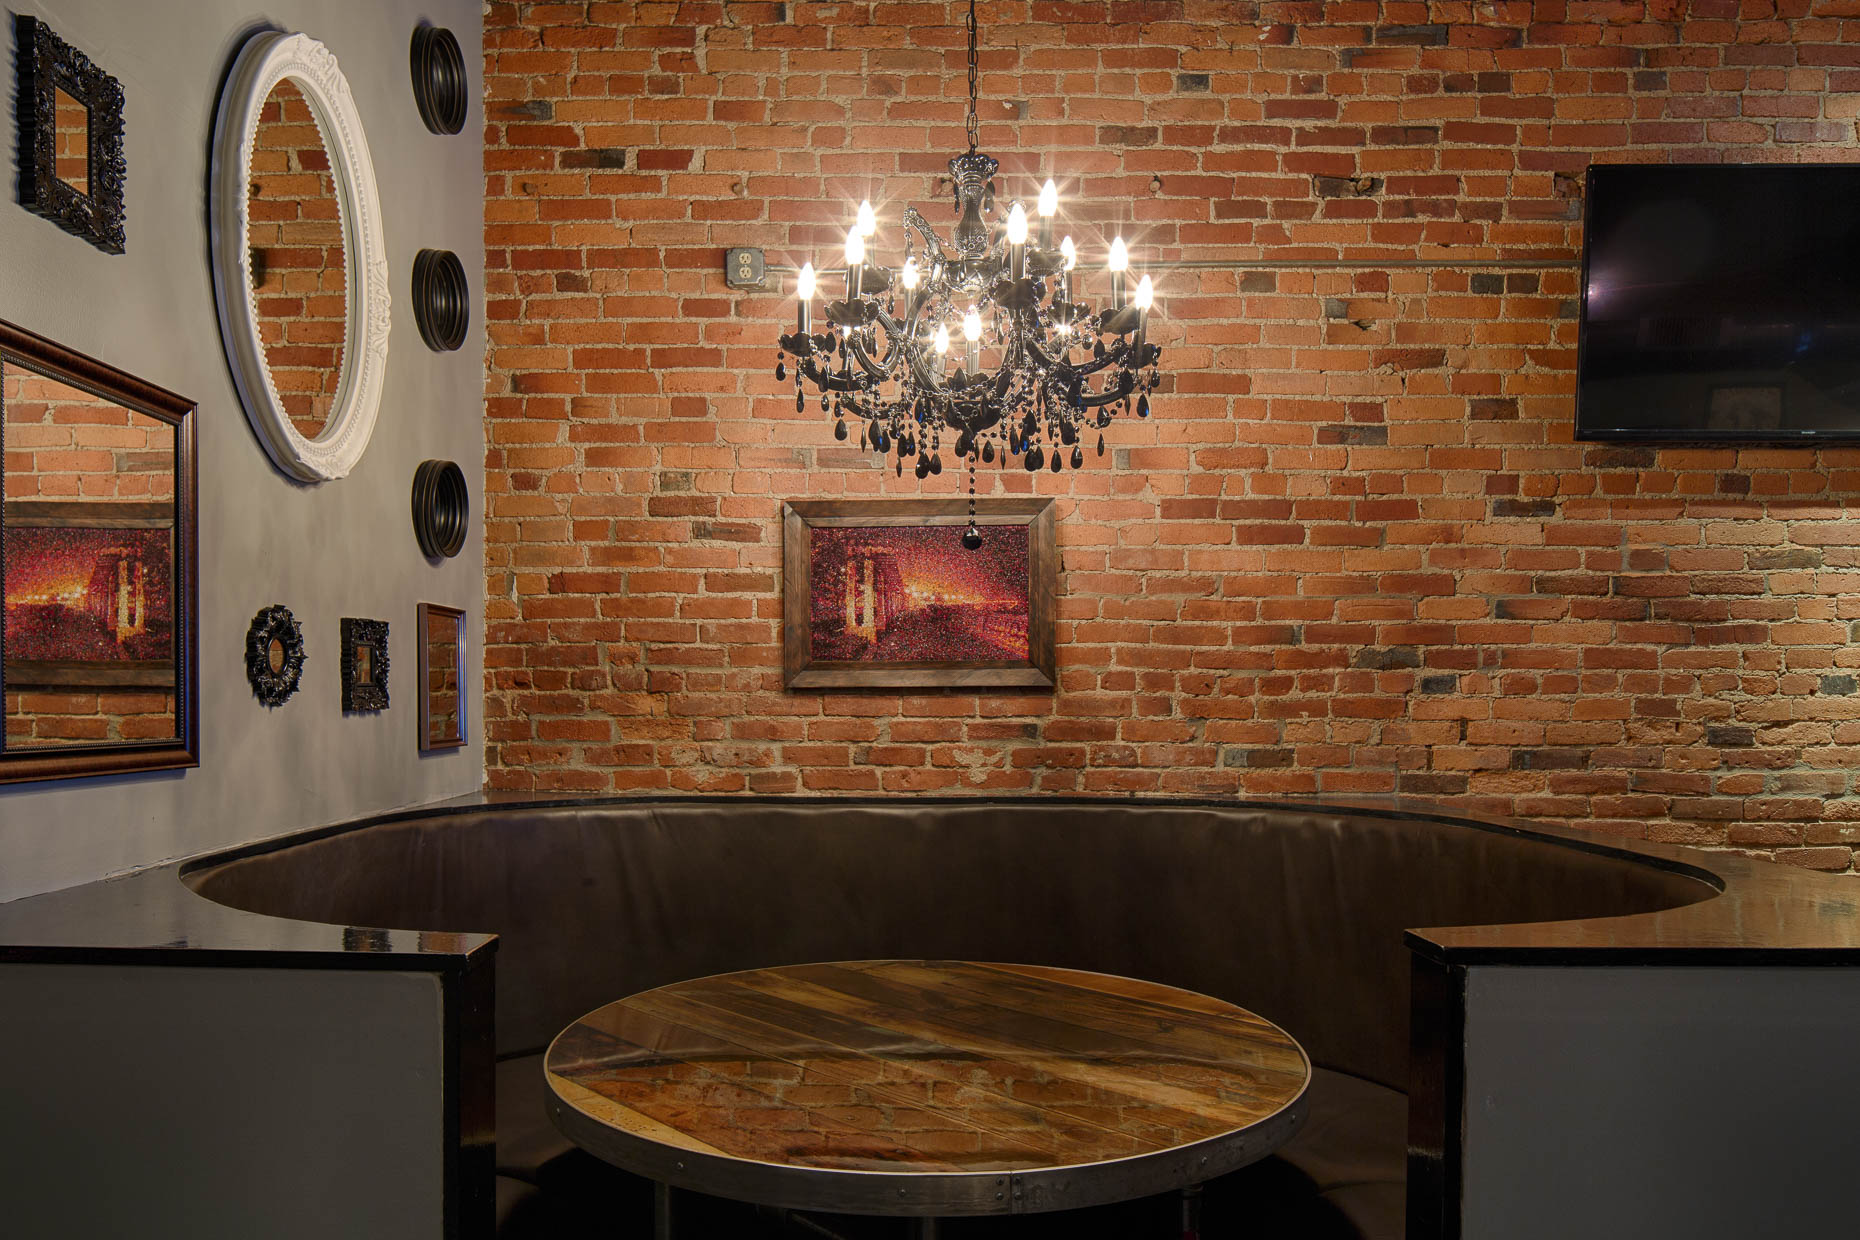 The Walrus Kitchen & Public House photographed by Lauren K Davis based in Columbus, Ohio